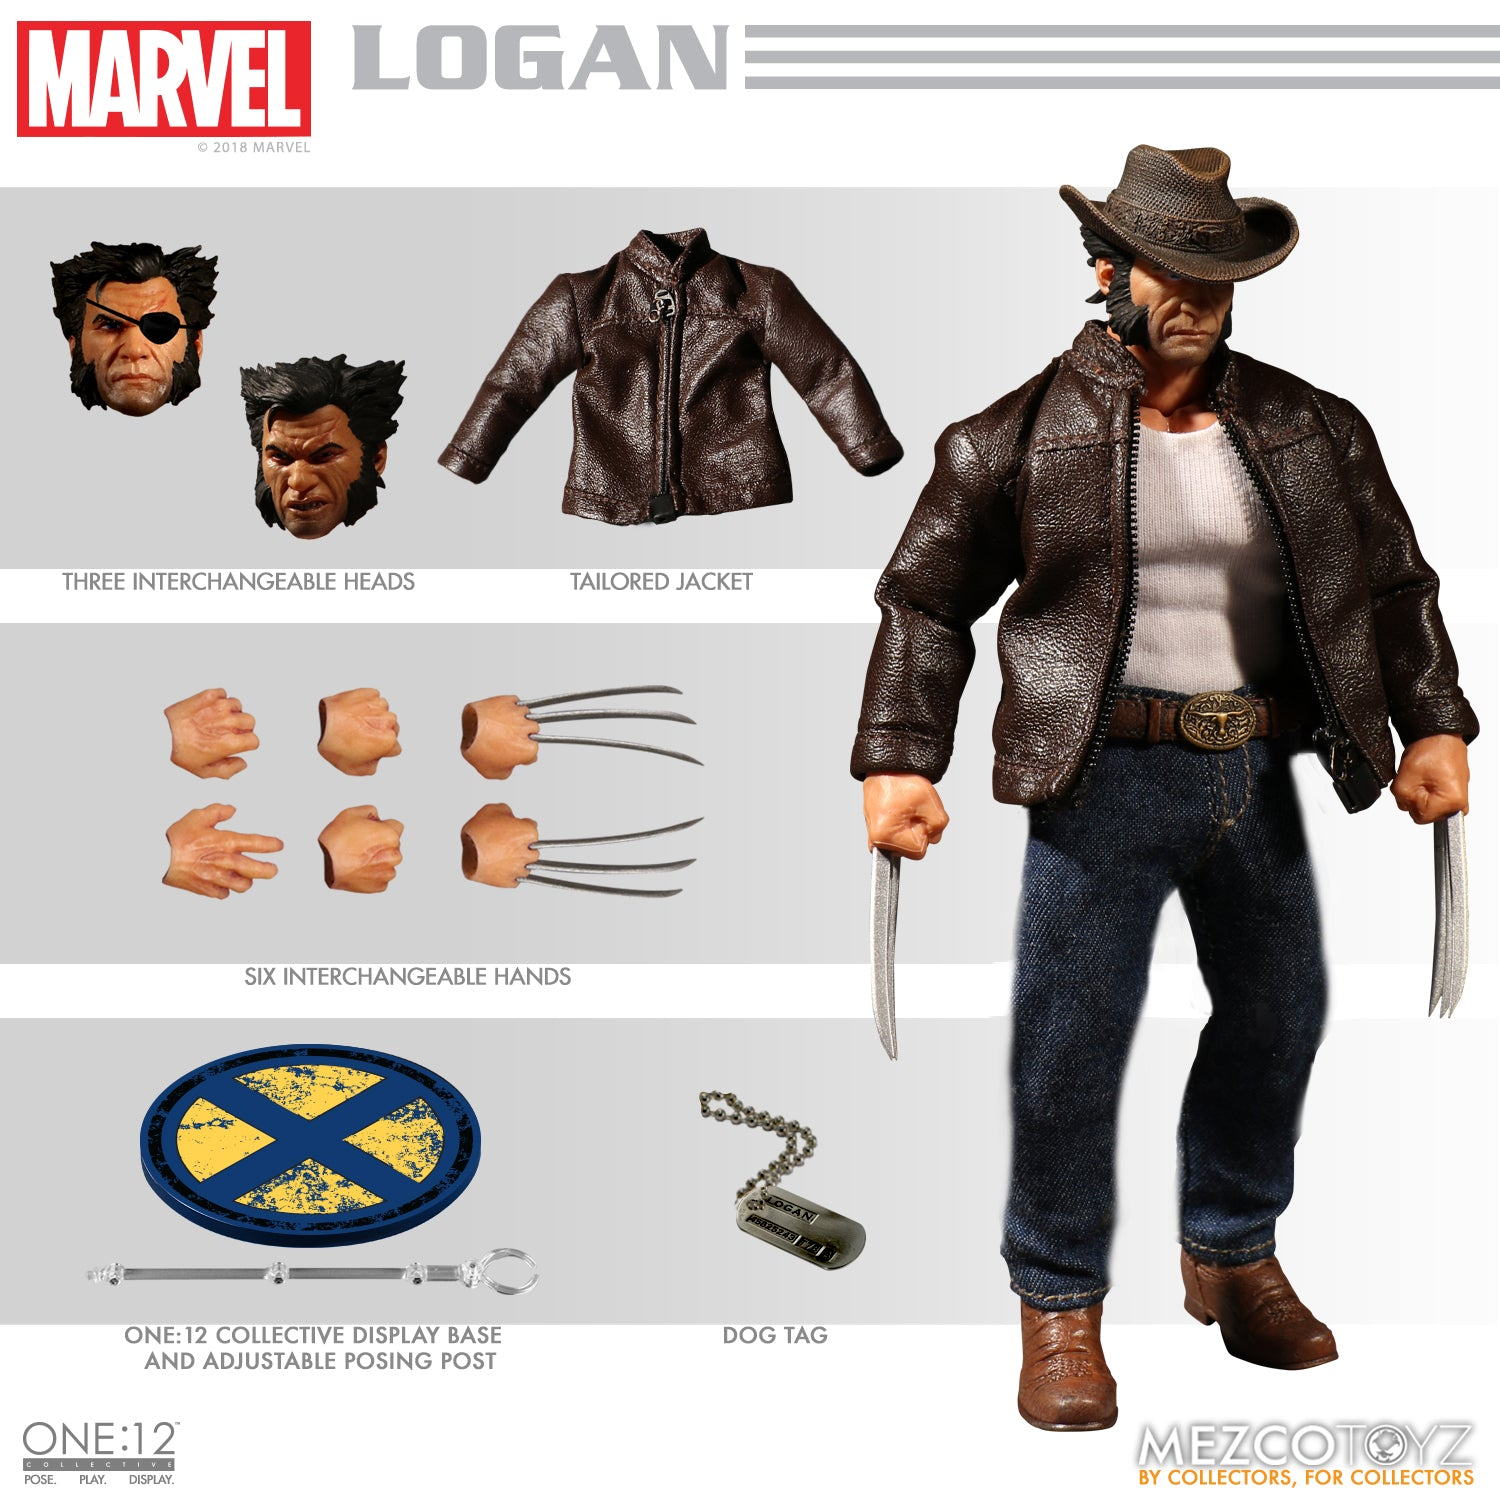 One-12 Collective Marvel Logan AF